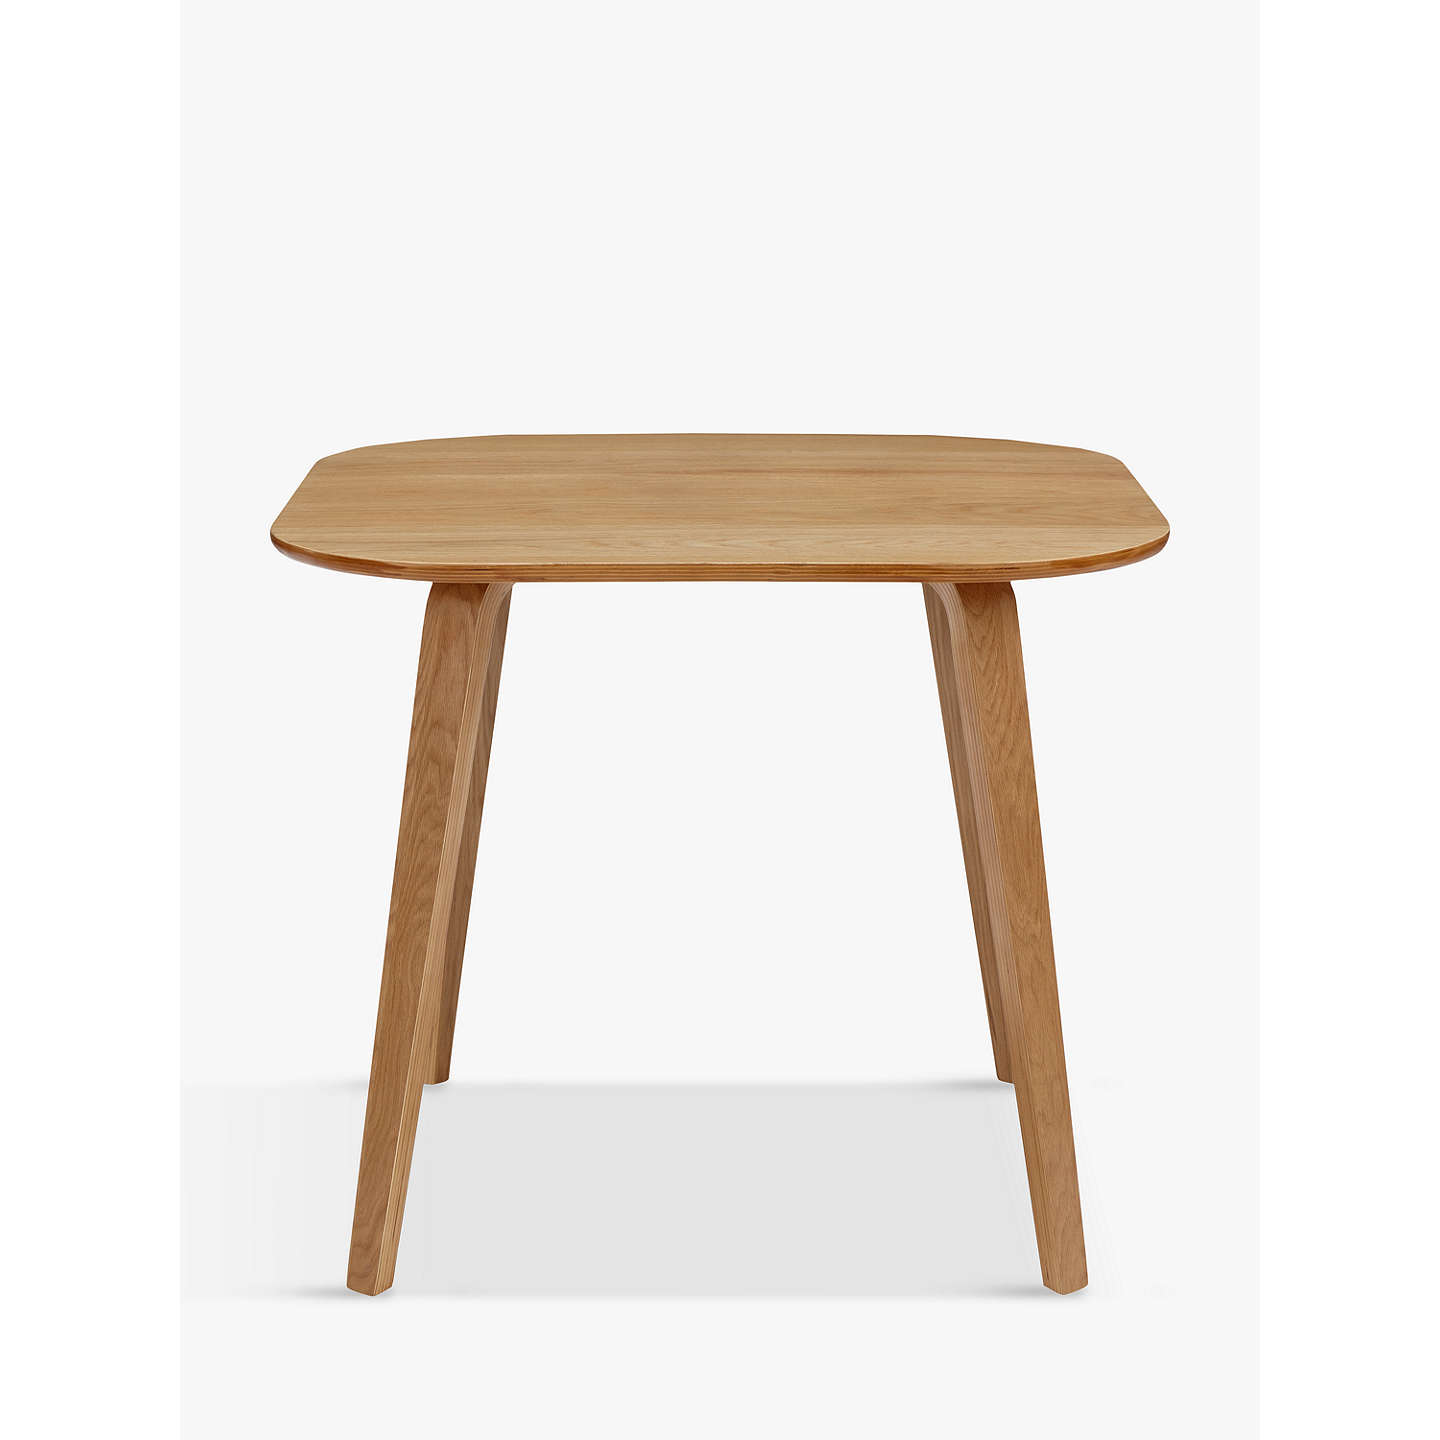 House by john lewis anton dining table small at john lewis for John lewis chinese furniture